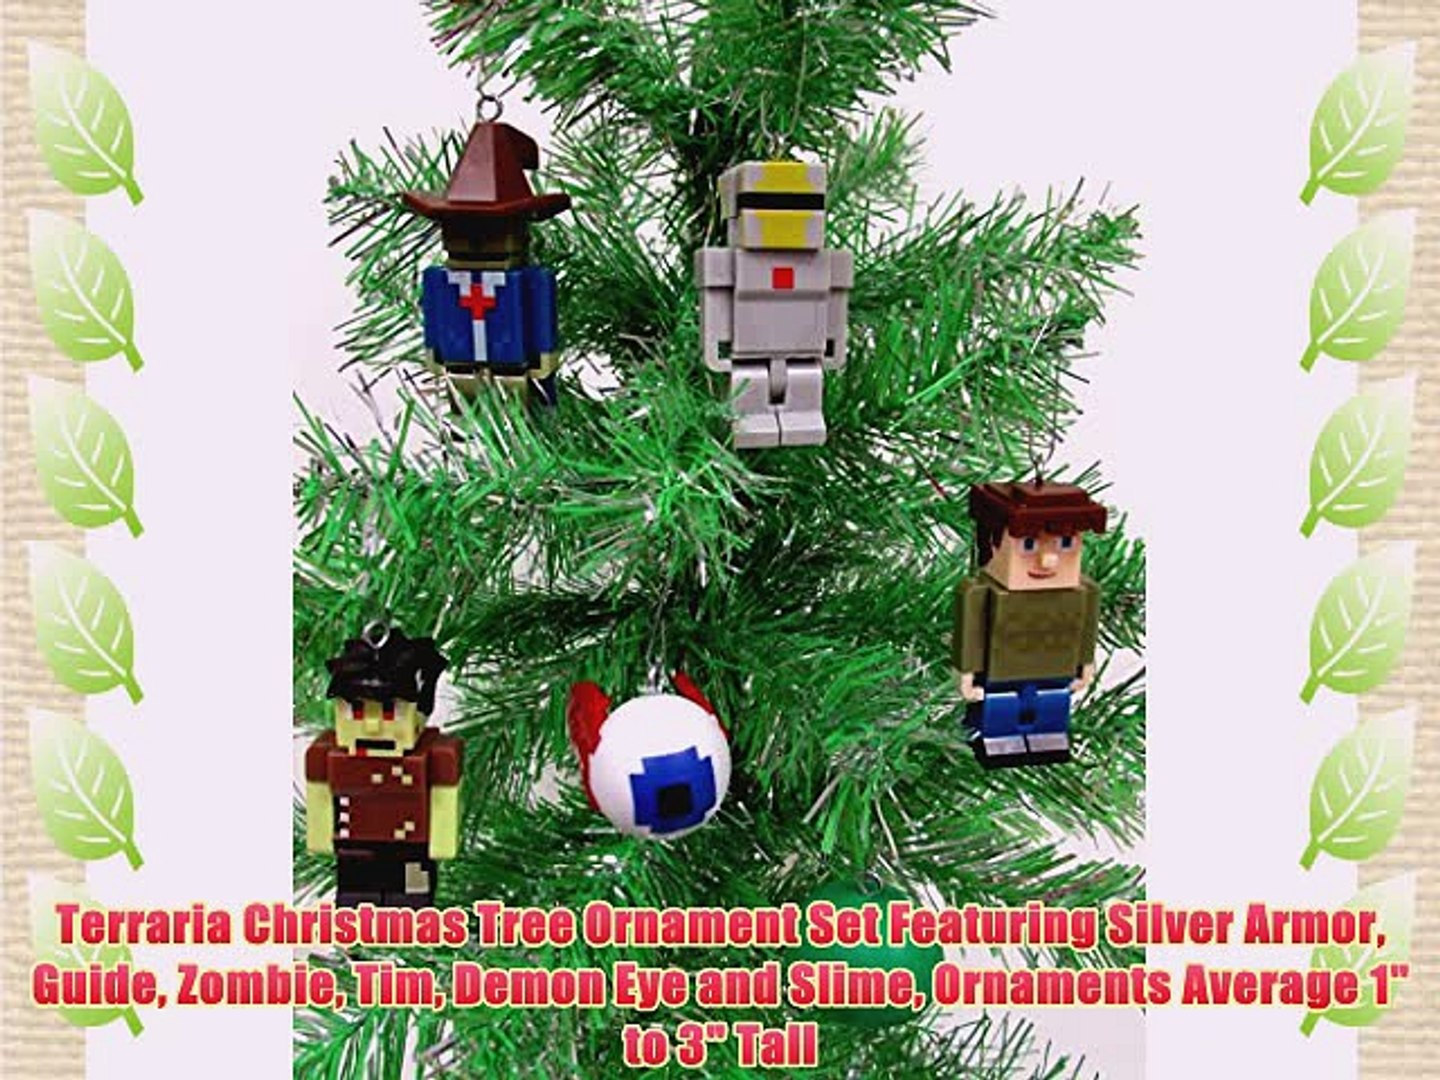 Terraria Christmas.Terraria Christmas Tree Ornament Set Featuring Silver Armor Guide Zombie Tim Demon Eye And